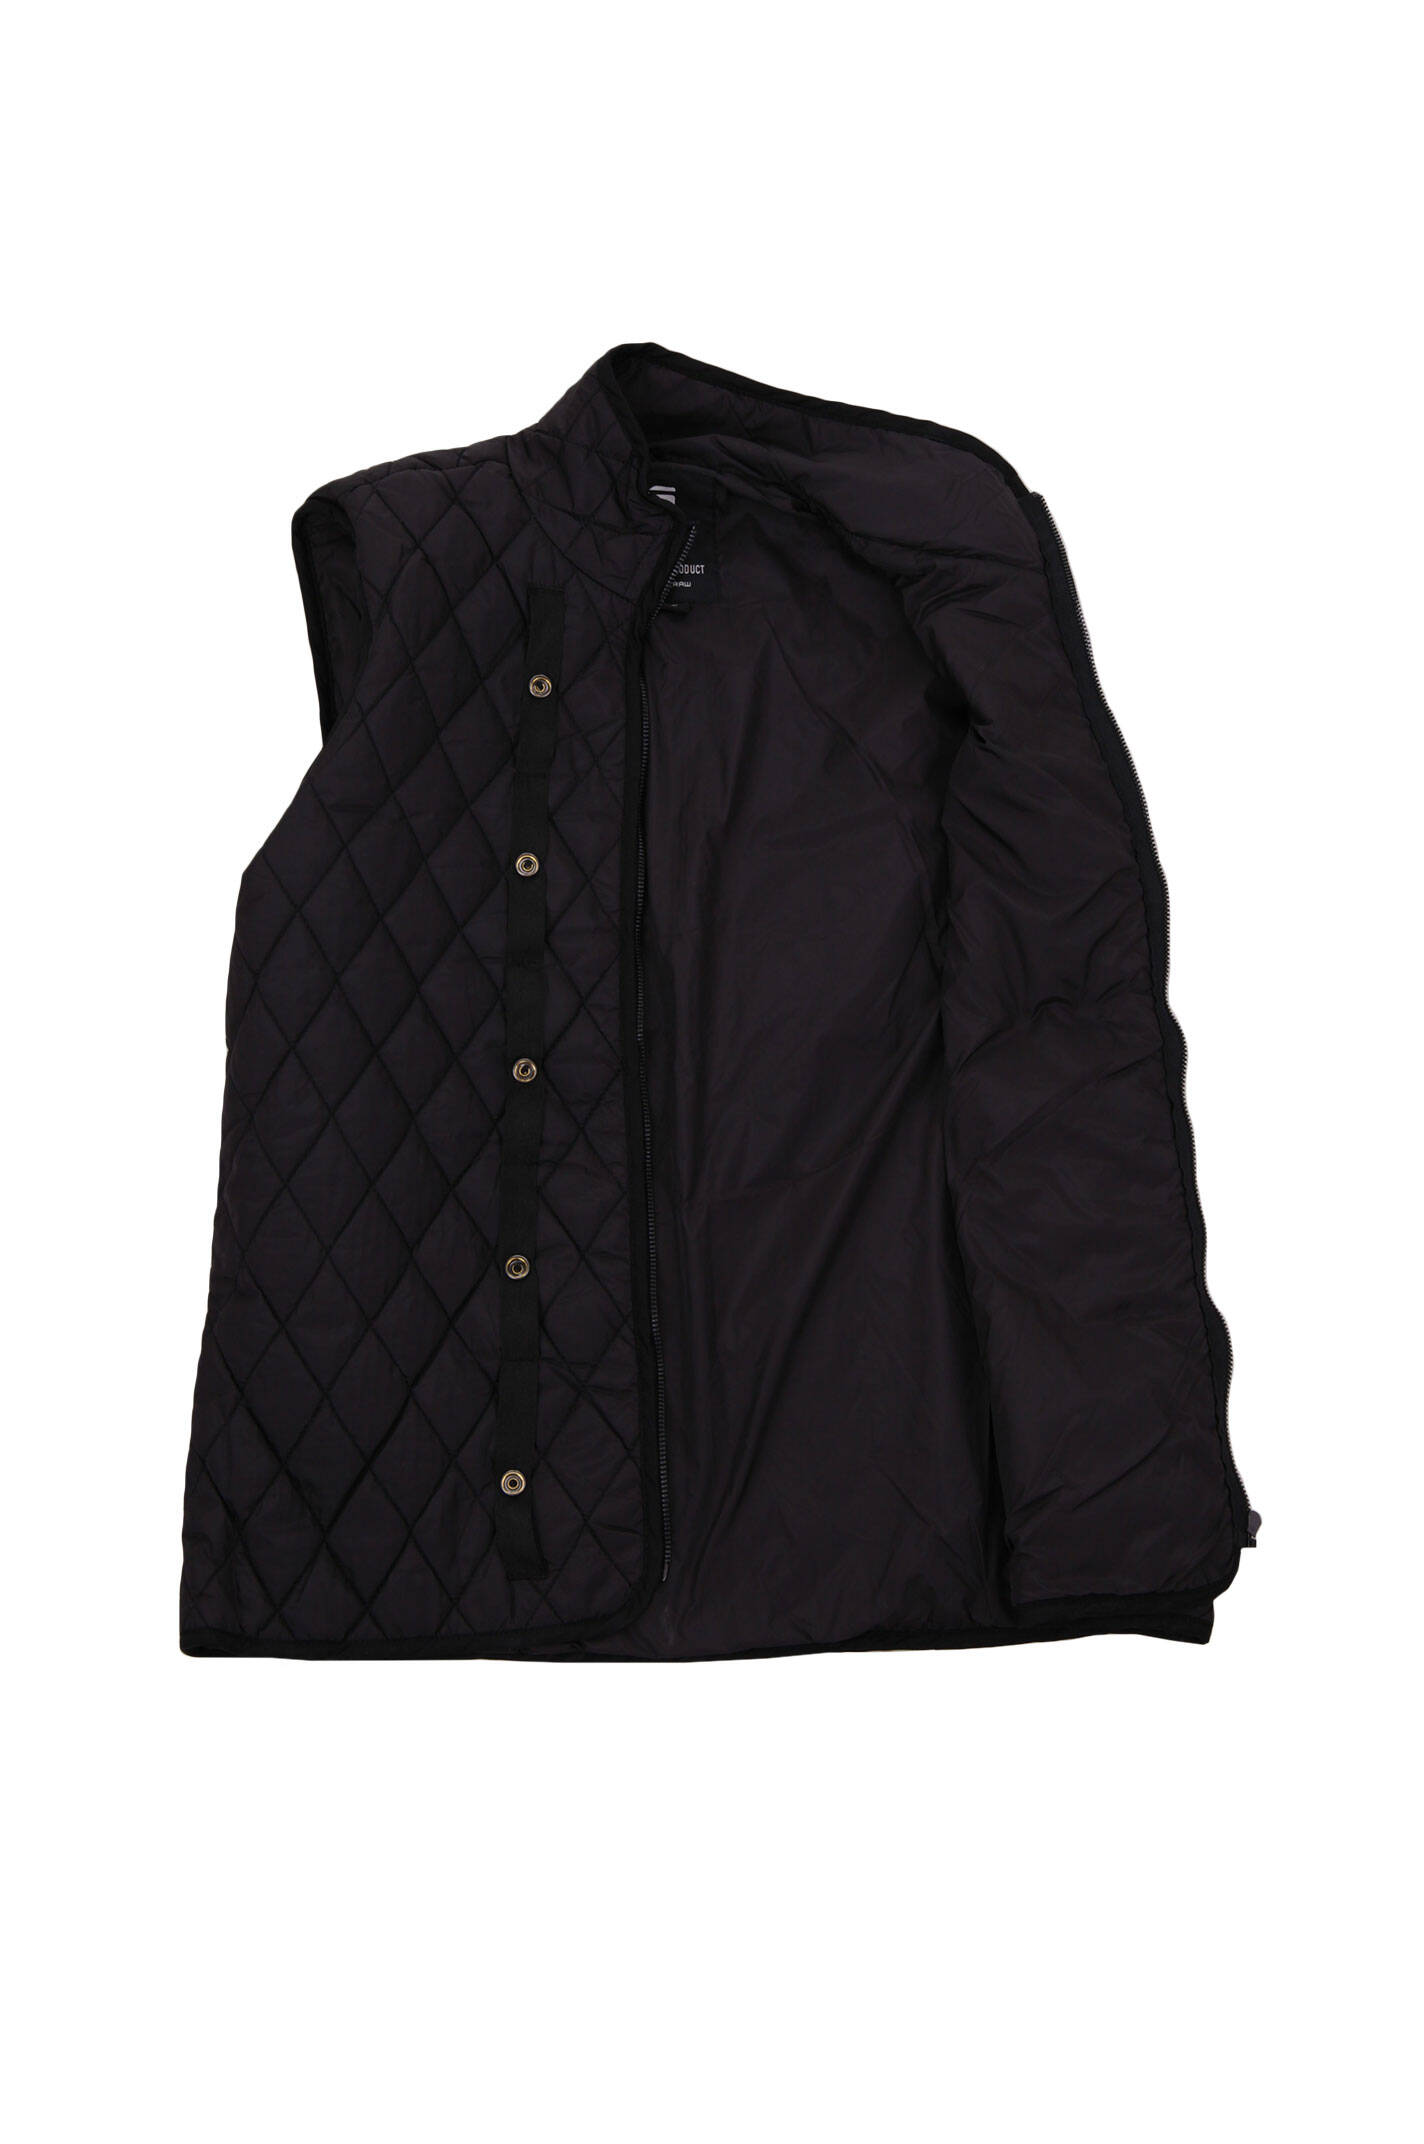 rovic cardigan gilet g star raw black men. Black Bedroom Furniture Sets. Home Design Ideas